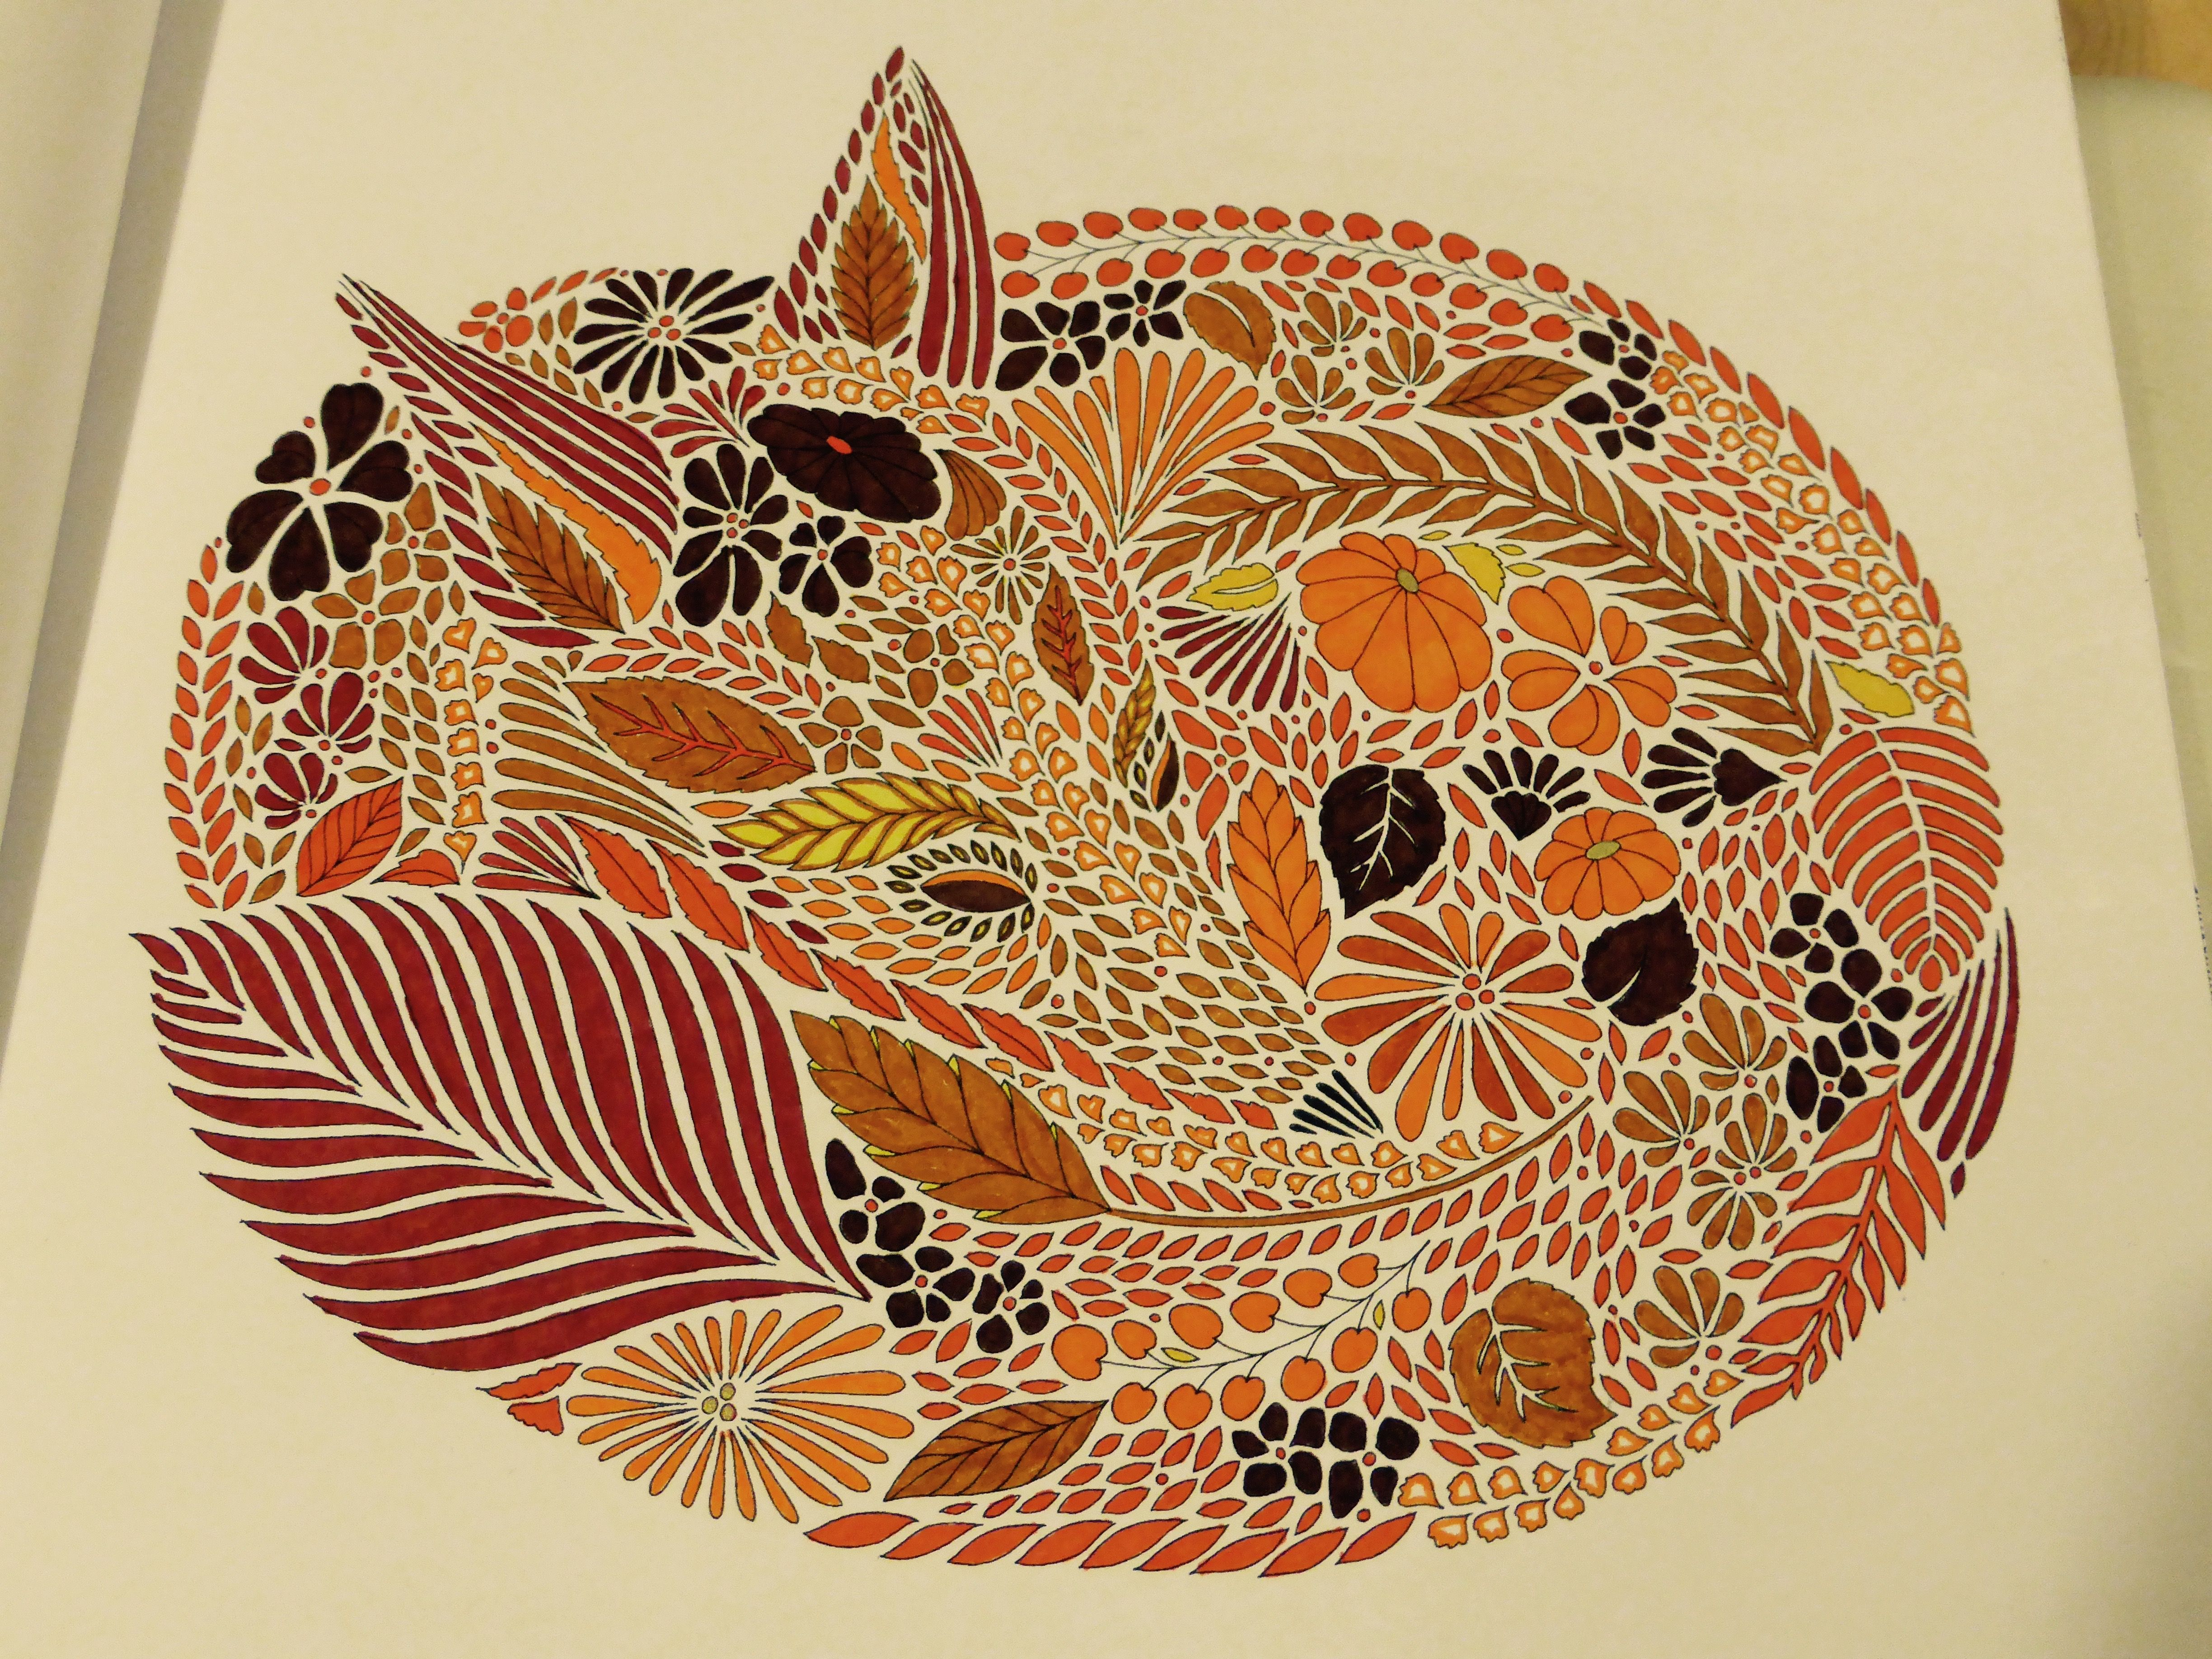 Zen colouring book animals - Fantastic Mrs Fox From Millie Marotta S Animal Kingdom Colouring Book